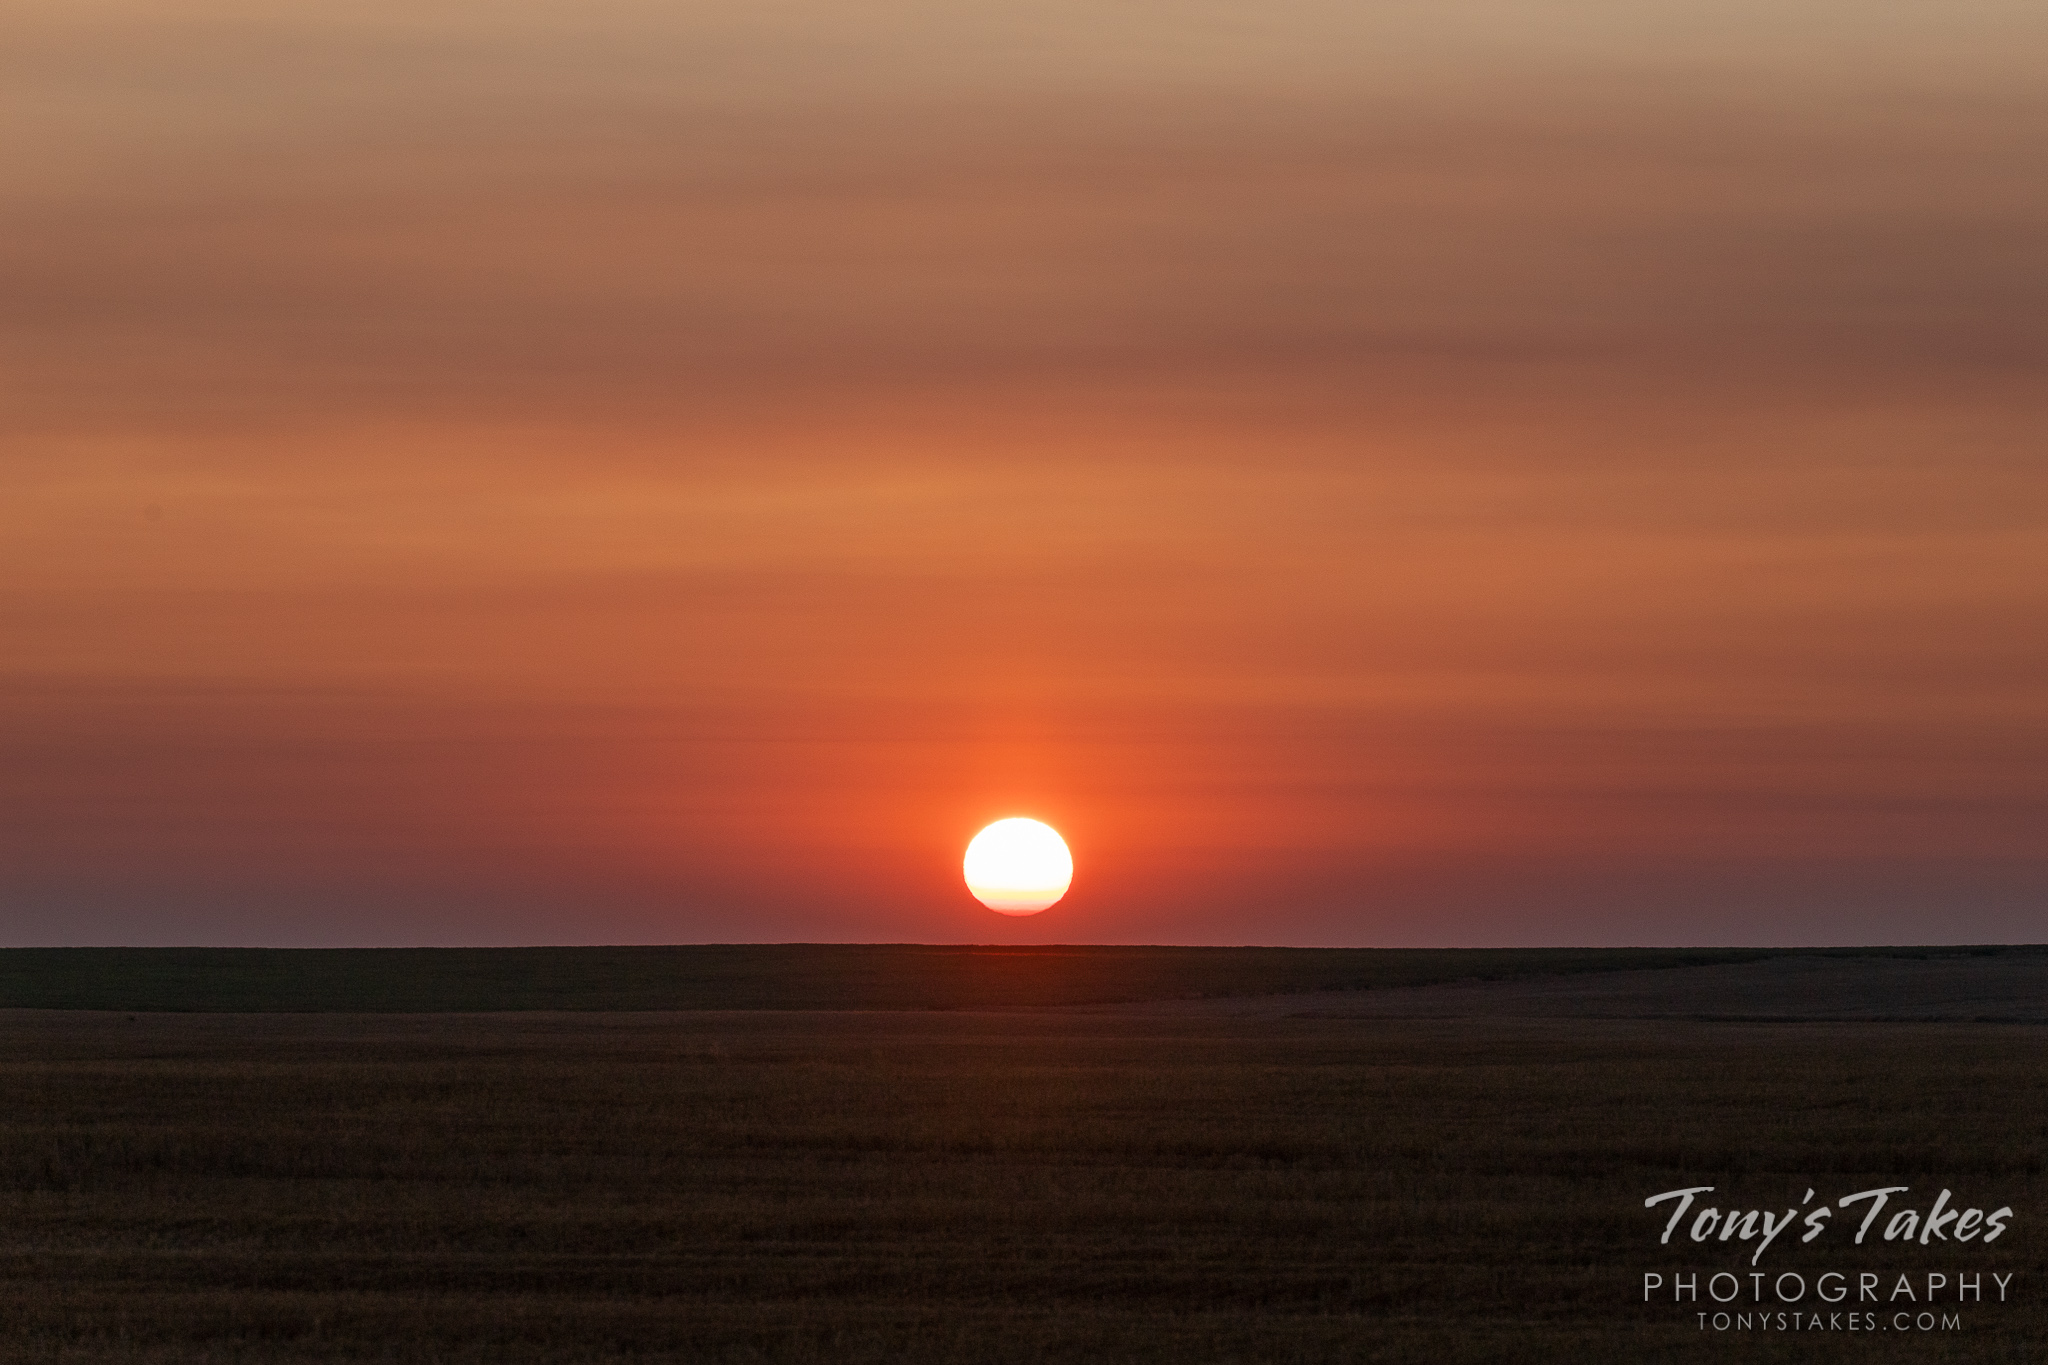 Smoke from wildfires in California and Canada colors the sunrise on Colorado's plains. (© Tony's Takes)